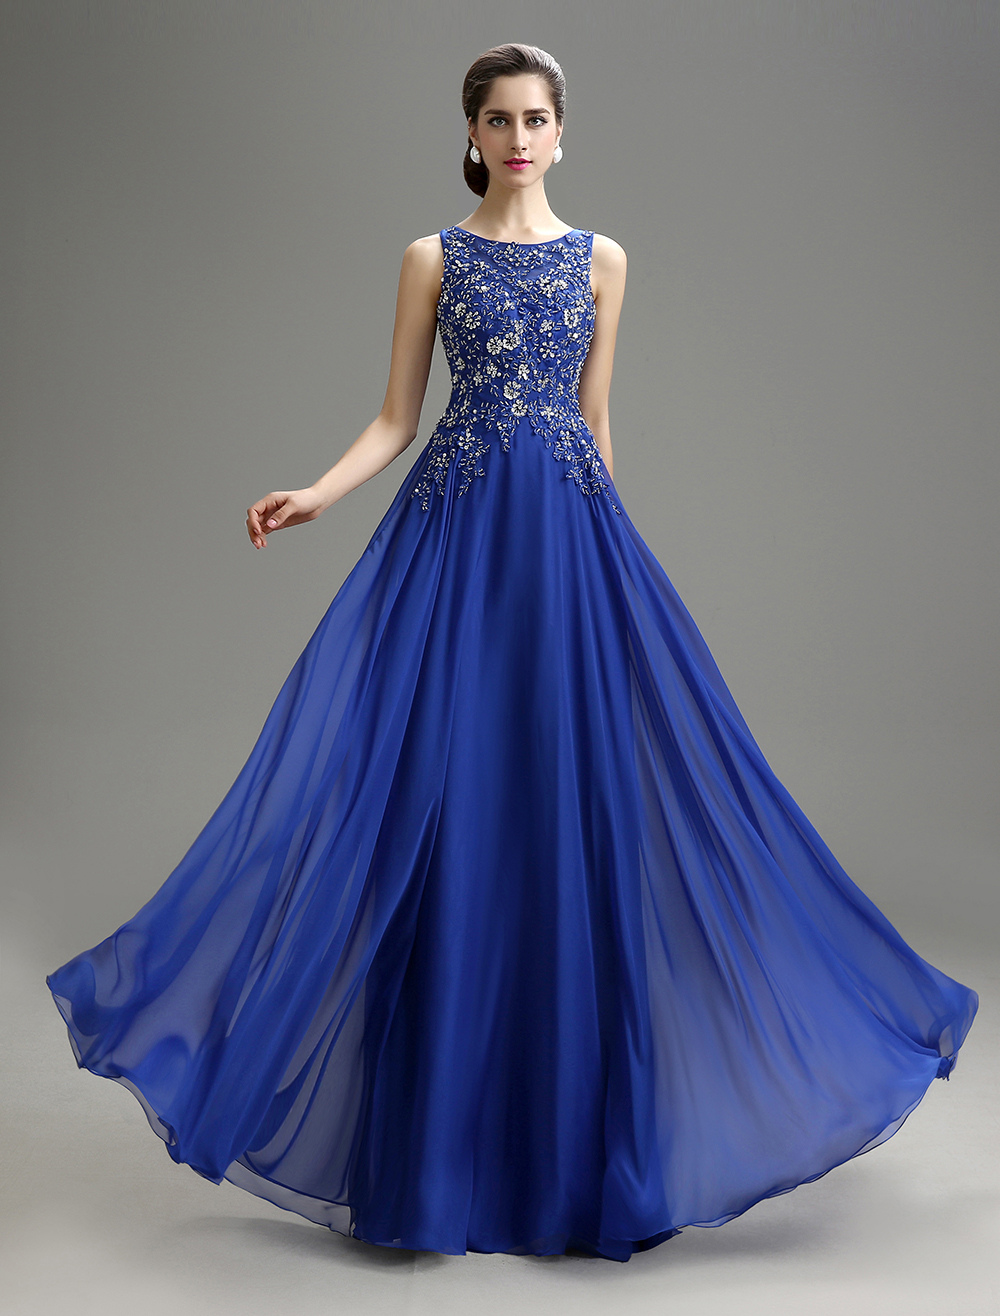 Royal Blue Applique Beaded Chiffon Dress For Mother of the Bride